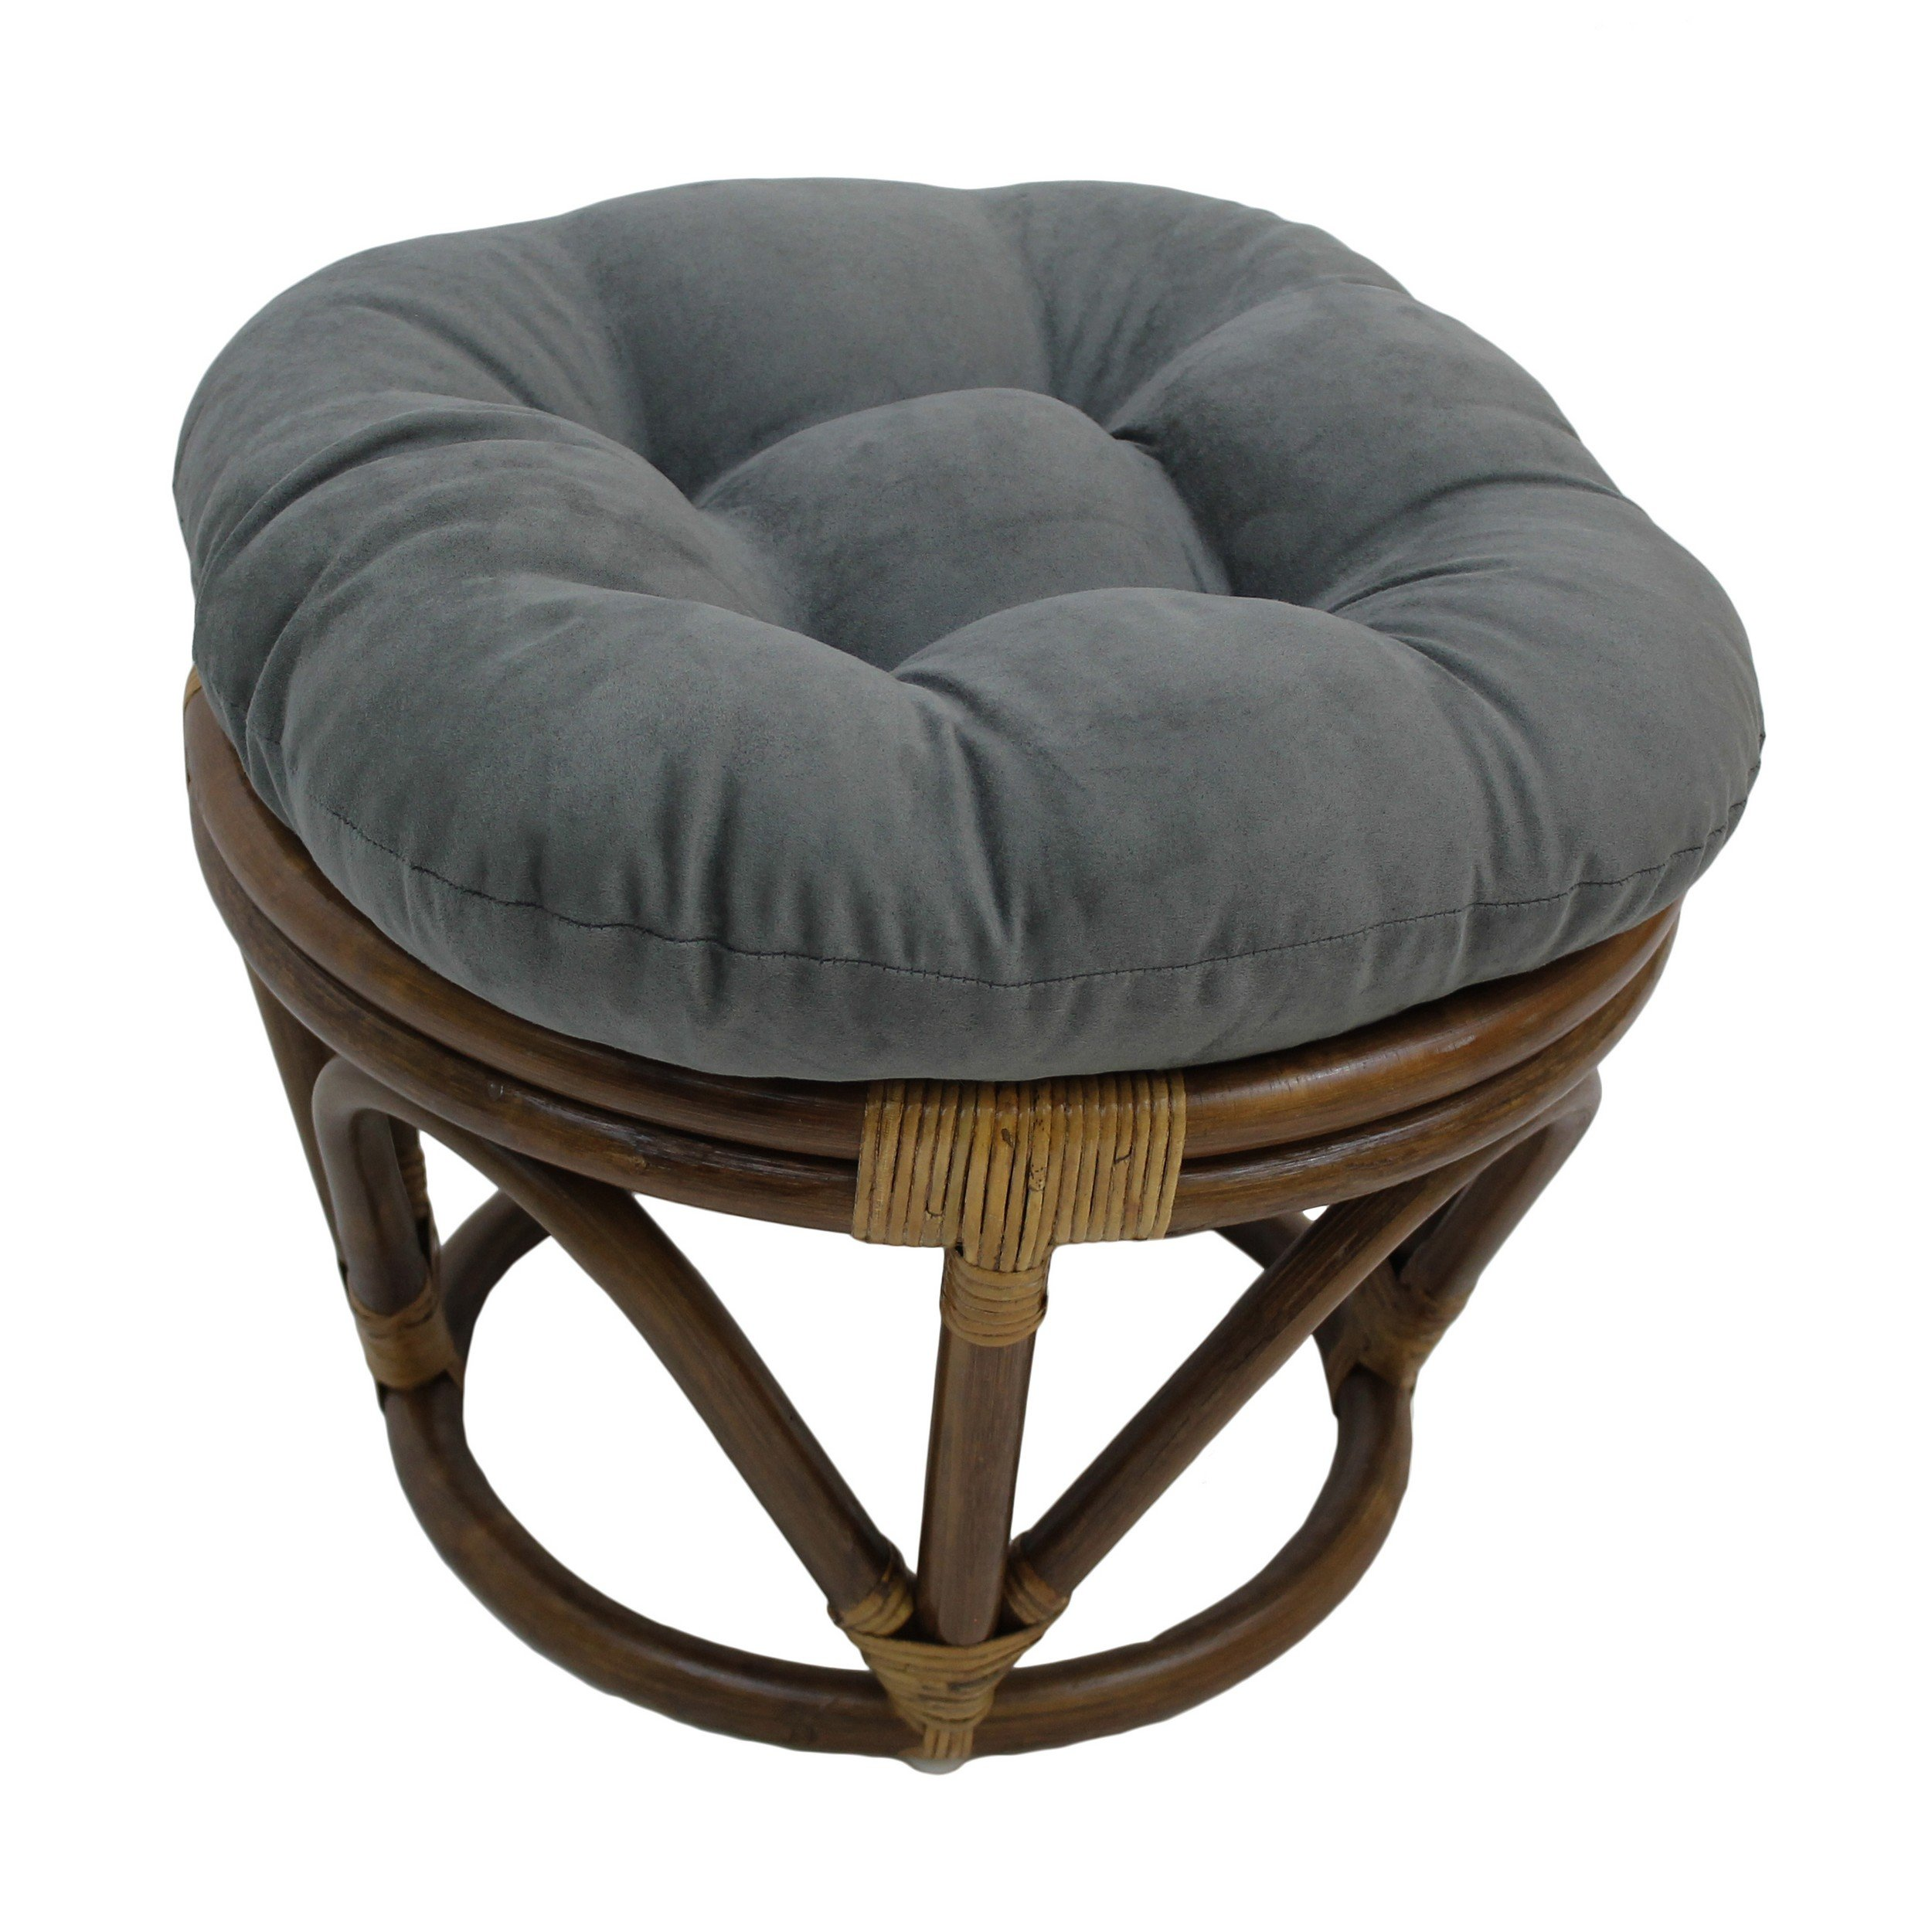 Blazing Needles Solid Microsuede Tufted Round Footstool Cushion, 18'', Steel Grey